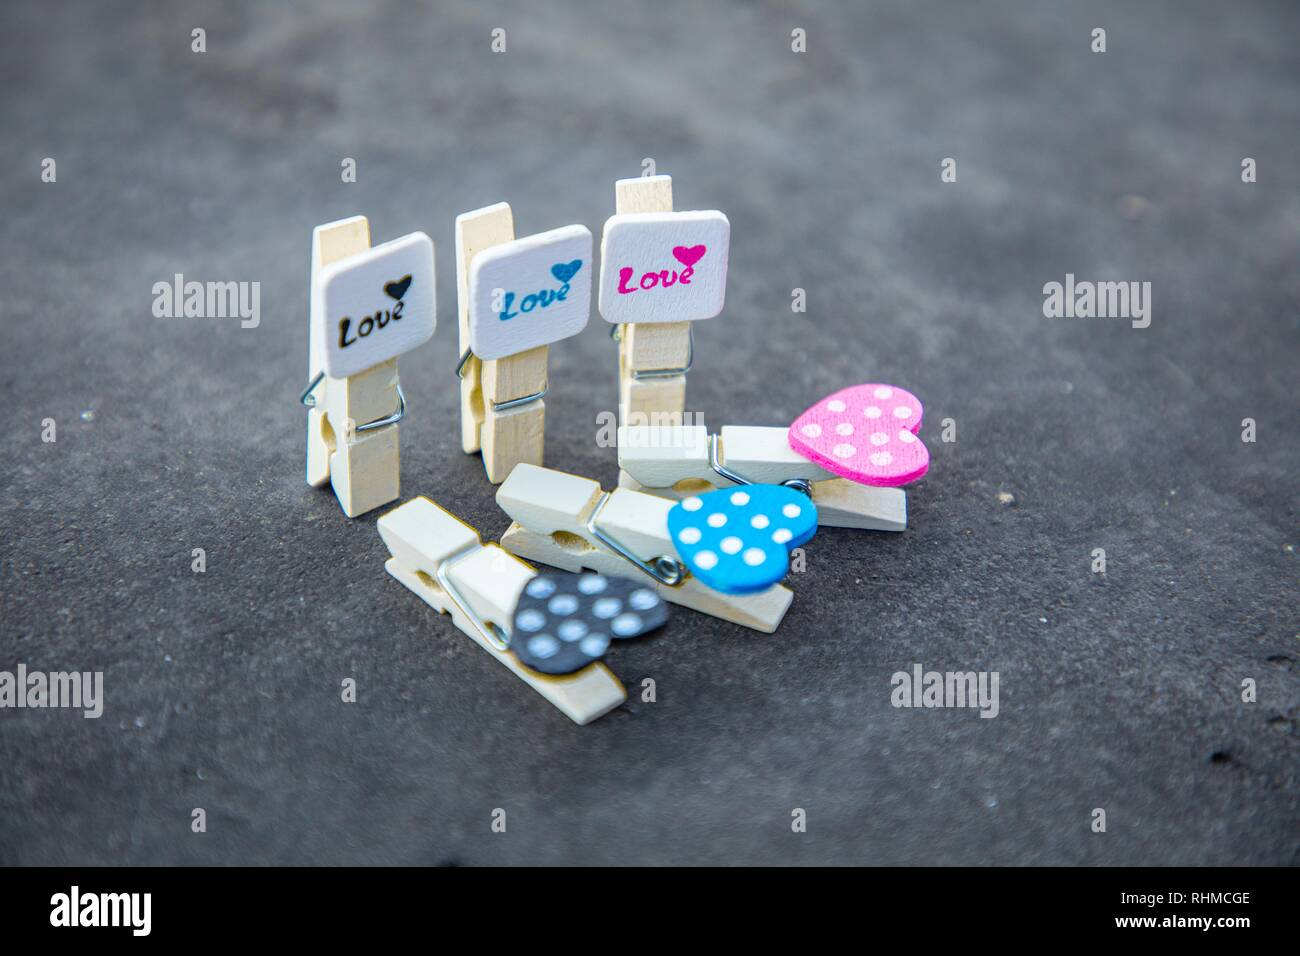 Artistic cute lovely pegs alignment background with hearts and polka dots -  Valentine's Day - Stock Image